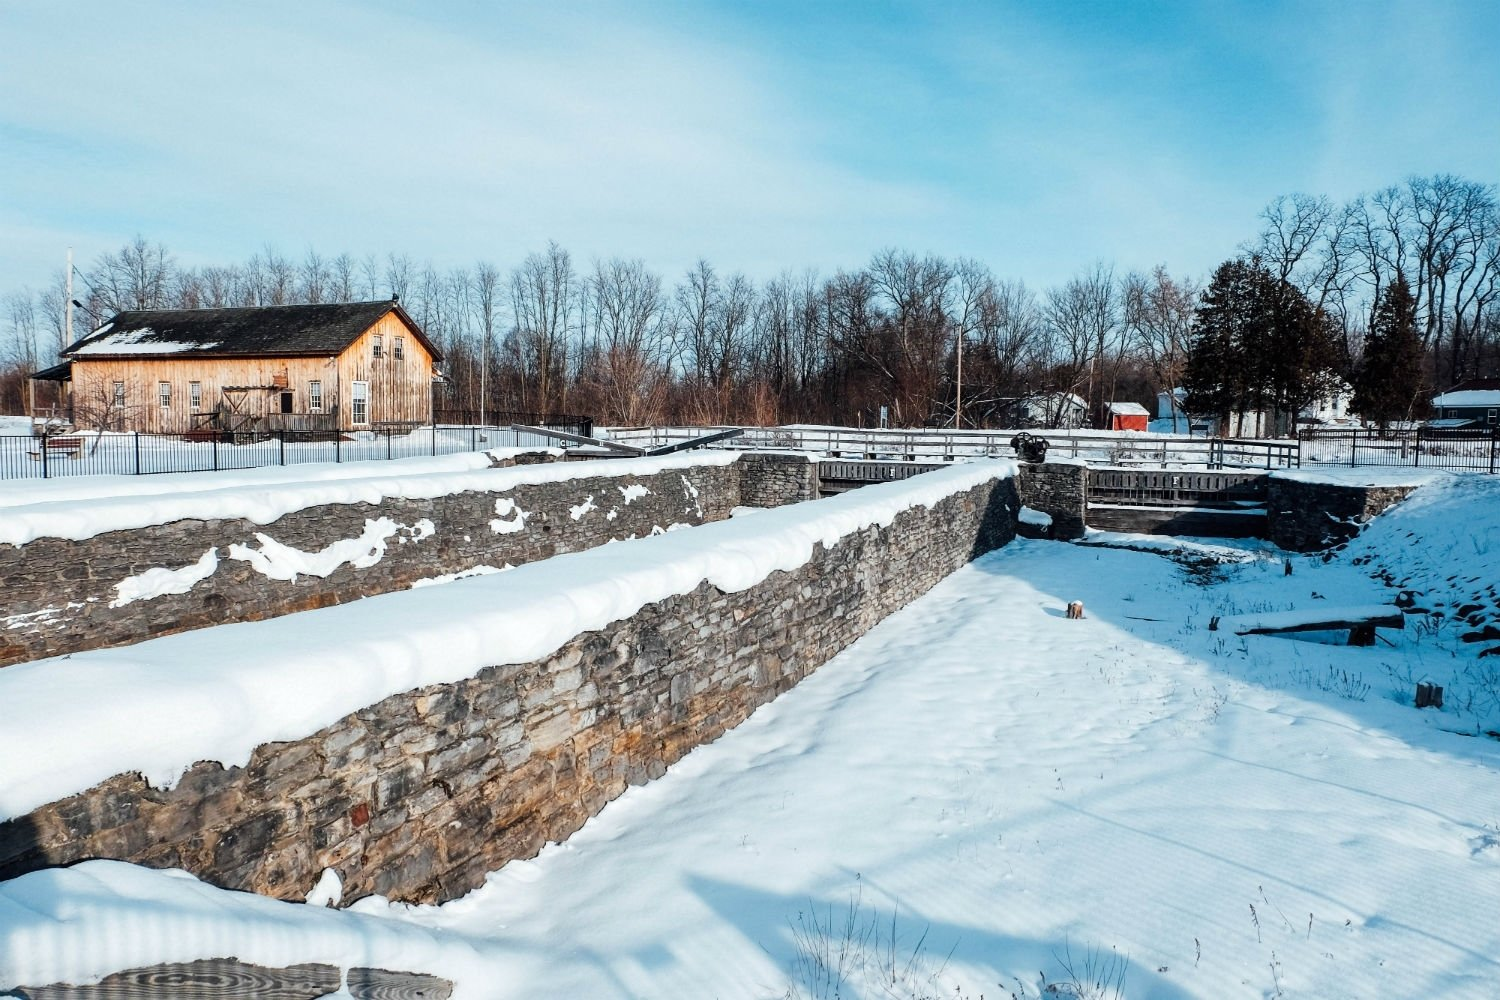 10 Most Popular Upstate New York Vacation Ideas historical attractions in upstate new york to visit with the kids 2020